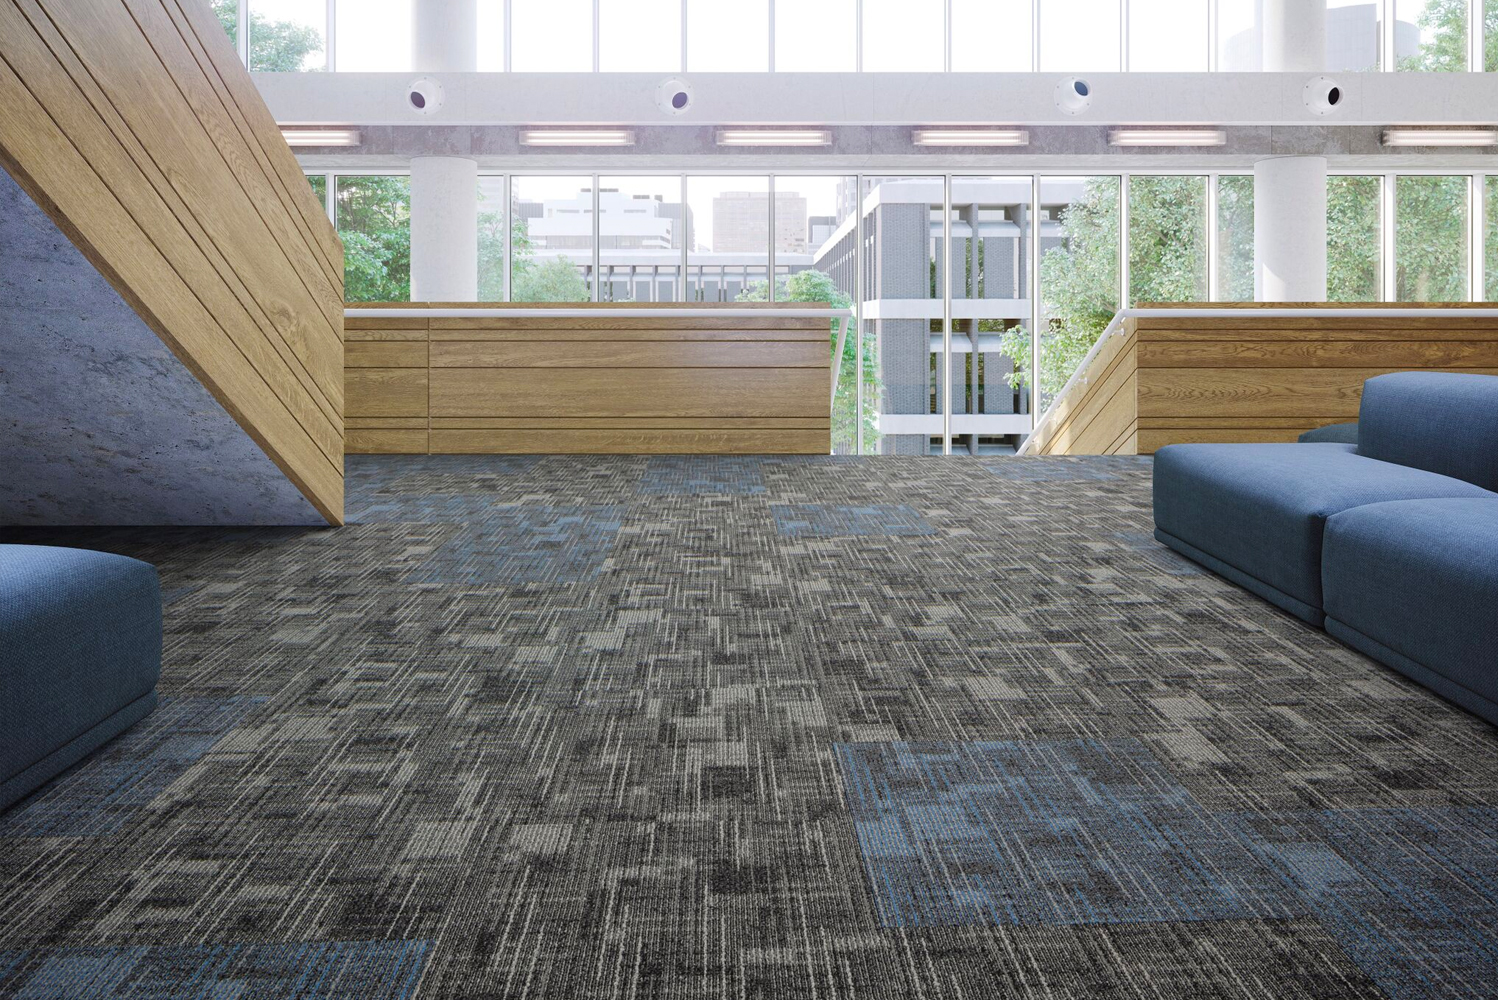 Designed by Jhane Barnes, this collection features two soft surface styles in Powerbond and modular platforms that offer flooring solutions for office, education and hospitality spaces.